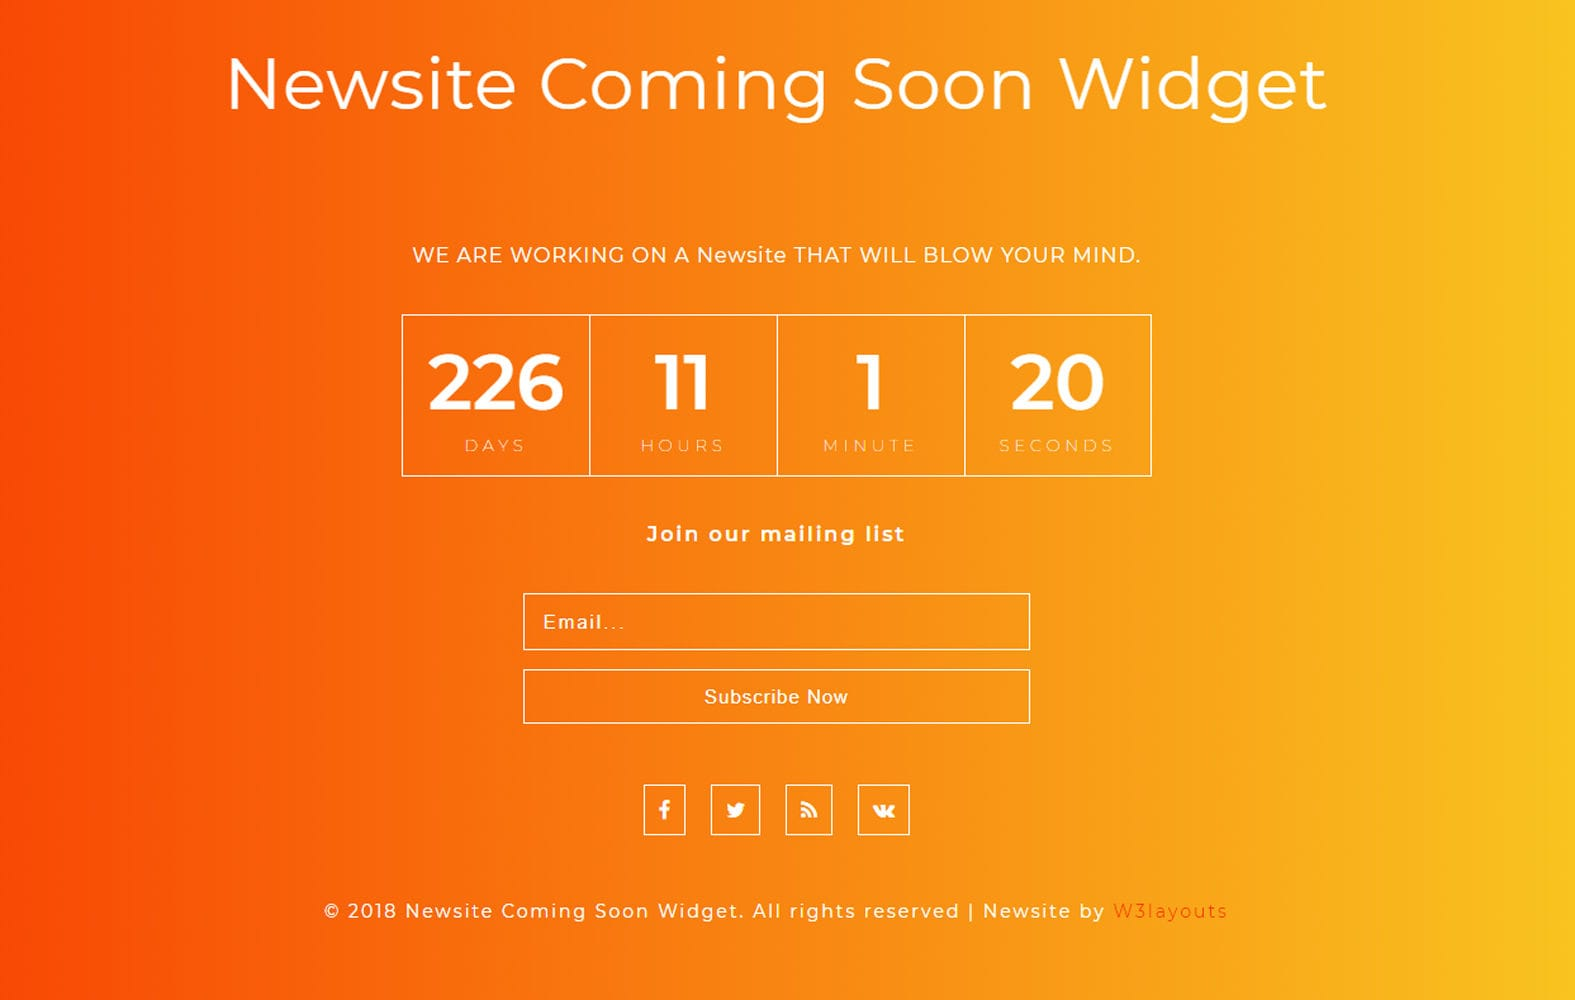 Newsite Coming Soon